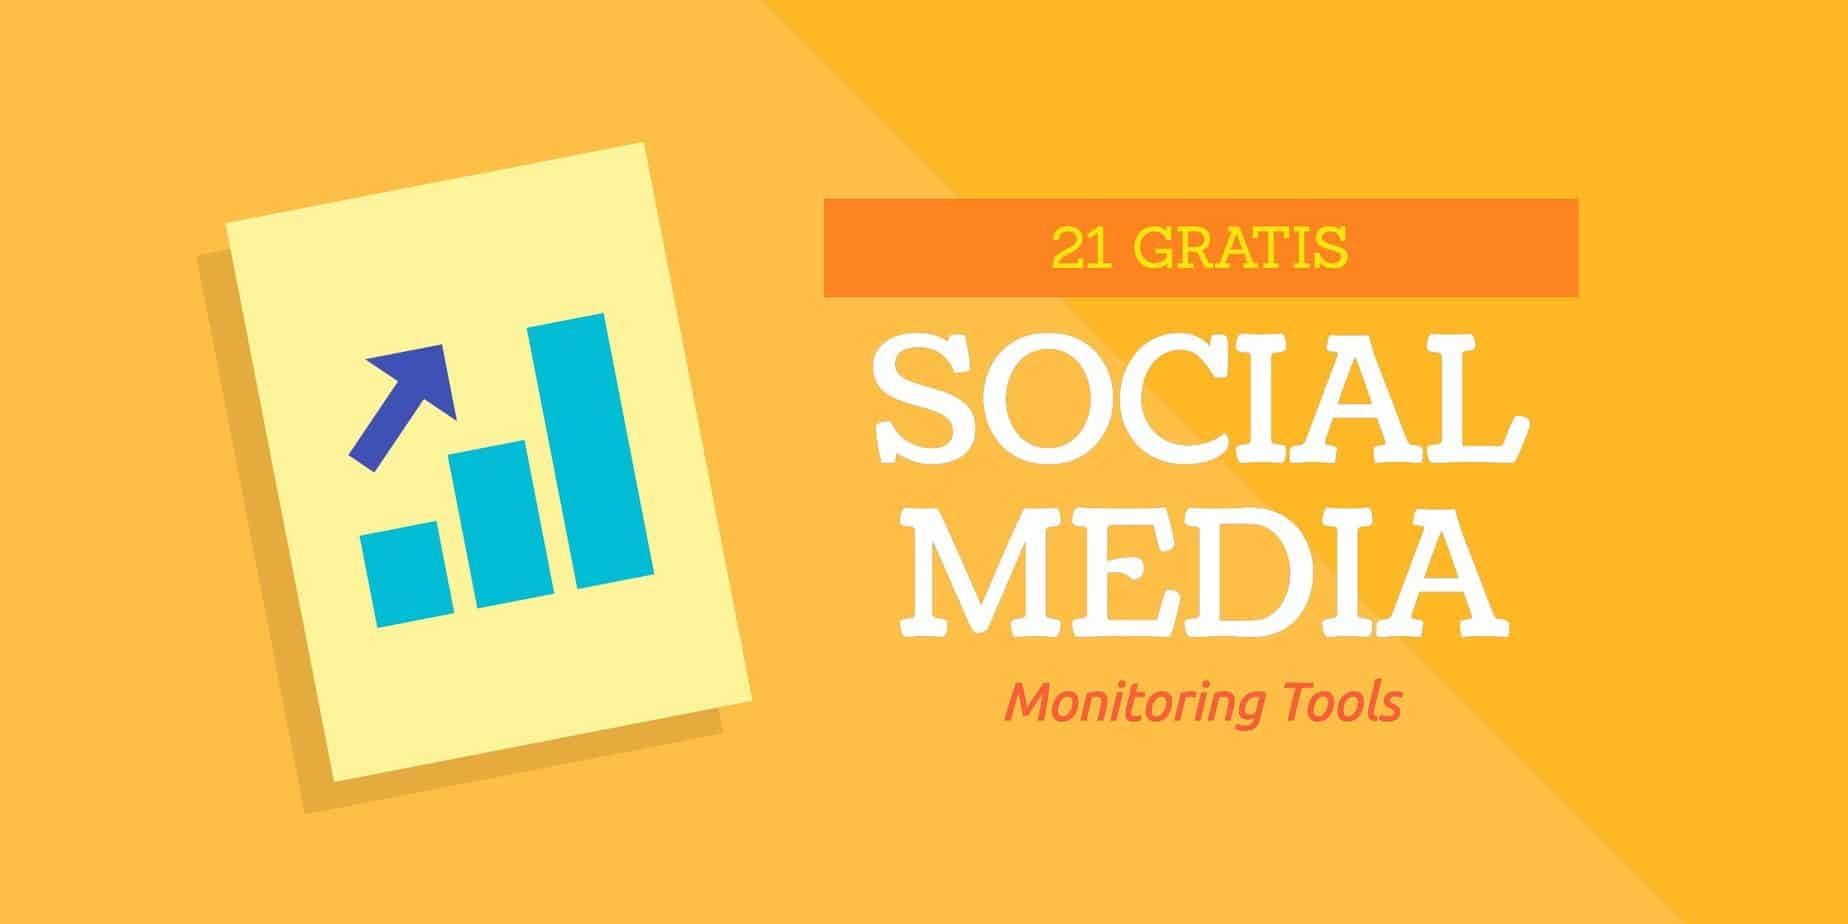 21 Gratis Social Media Monitoring Tools